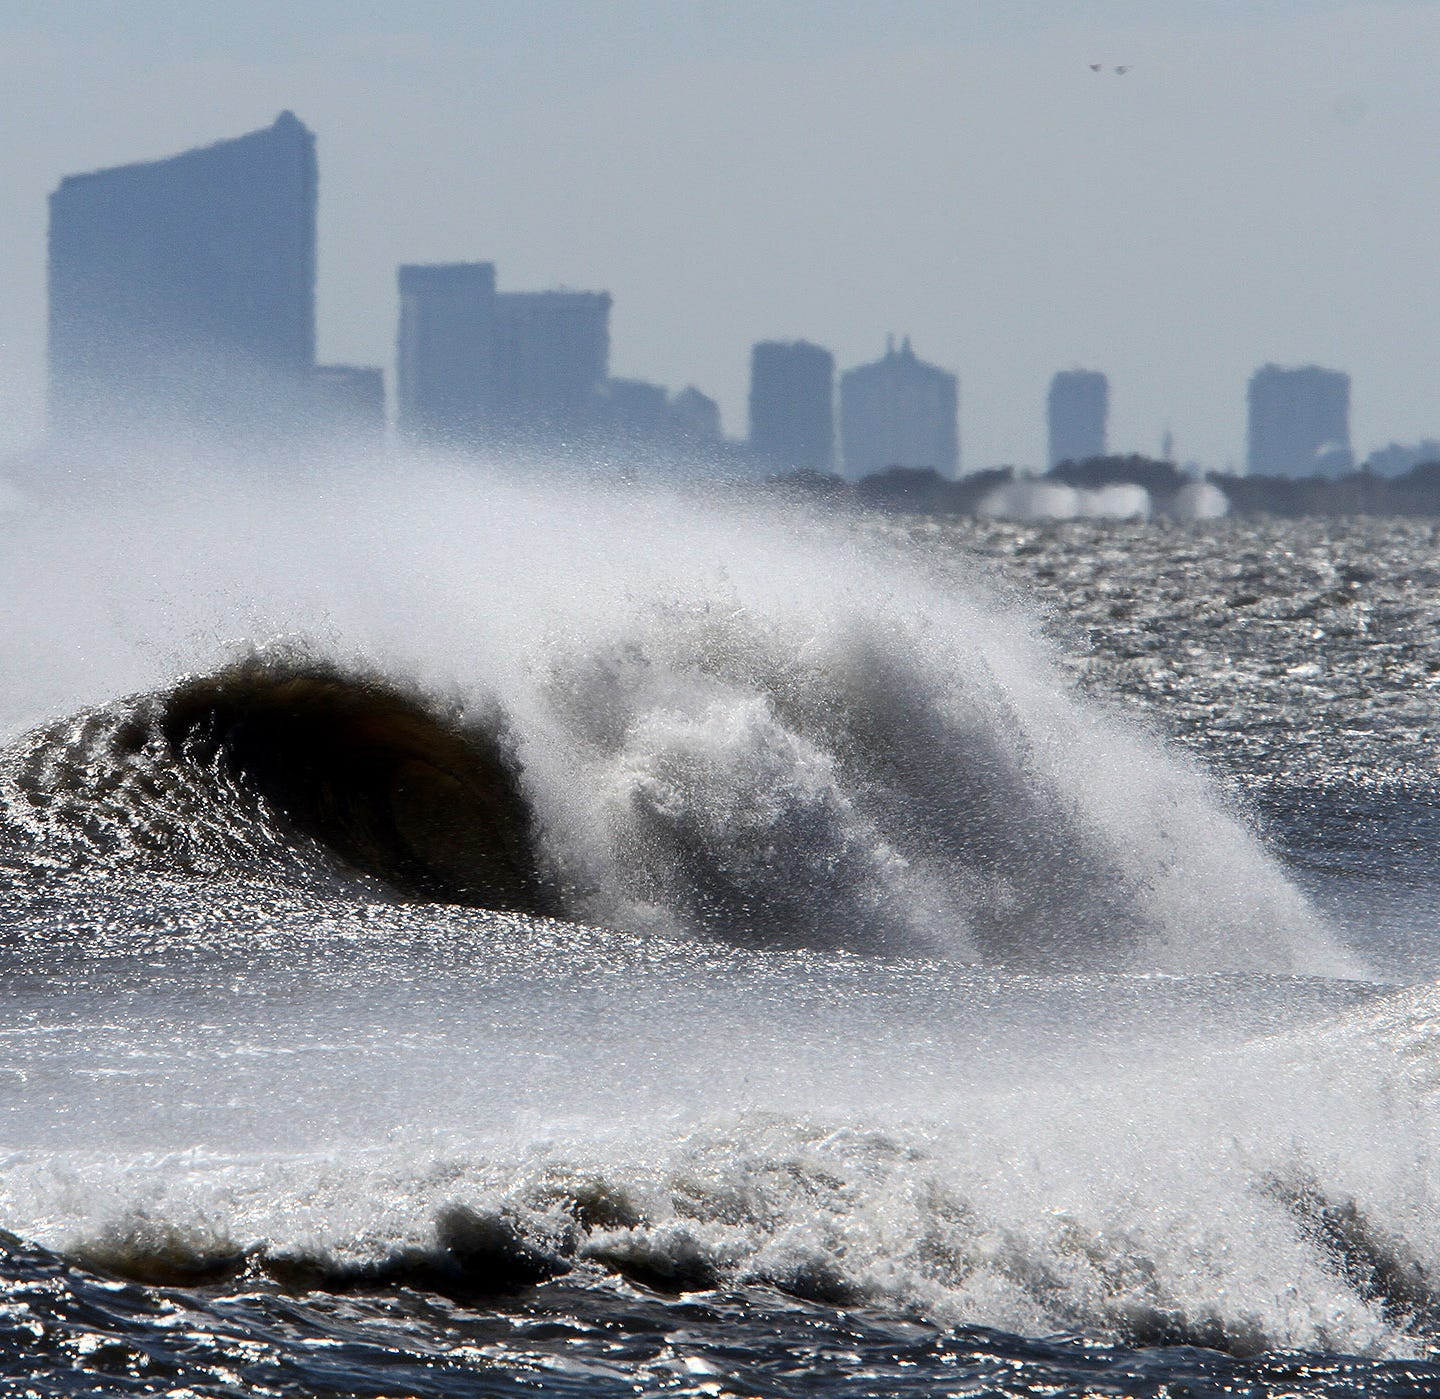 NJ weather: Nor'easter to bring rain, flooding and damaging winds starting today